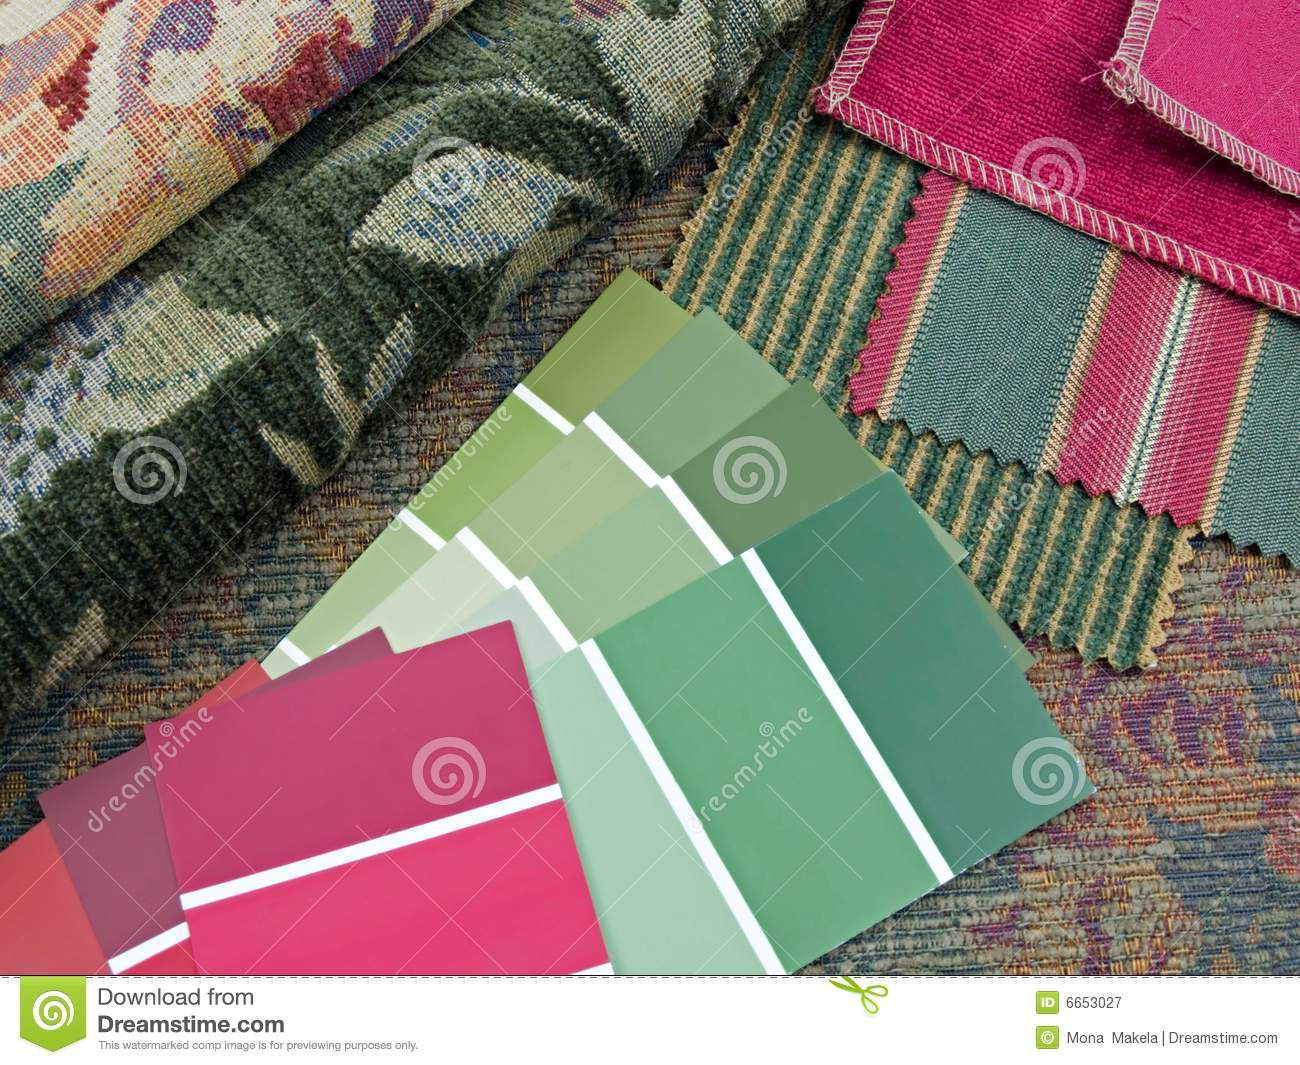 Red and green interior design plan royalty free stock - Red and green interior design ...